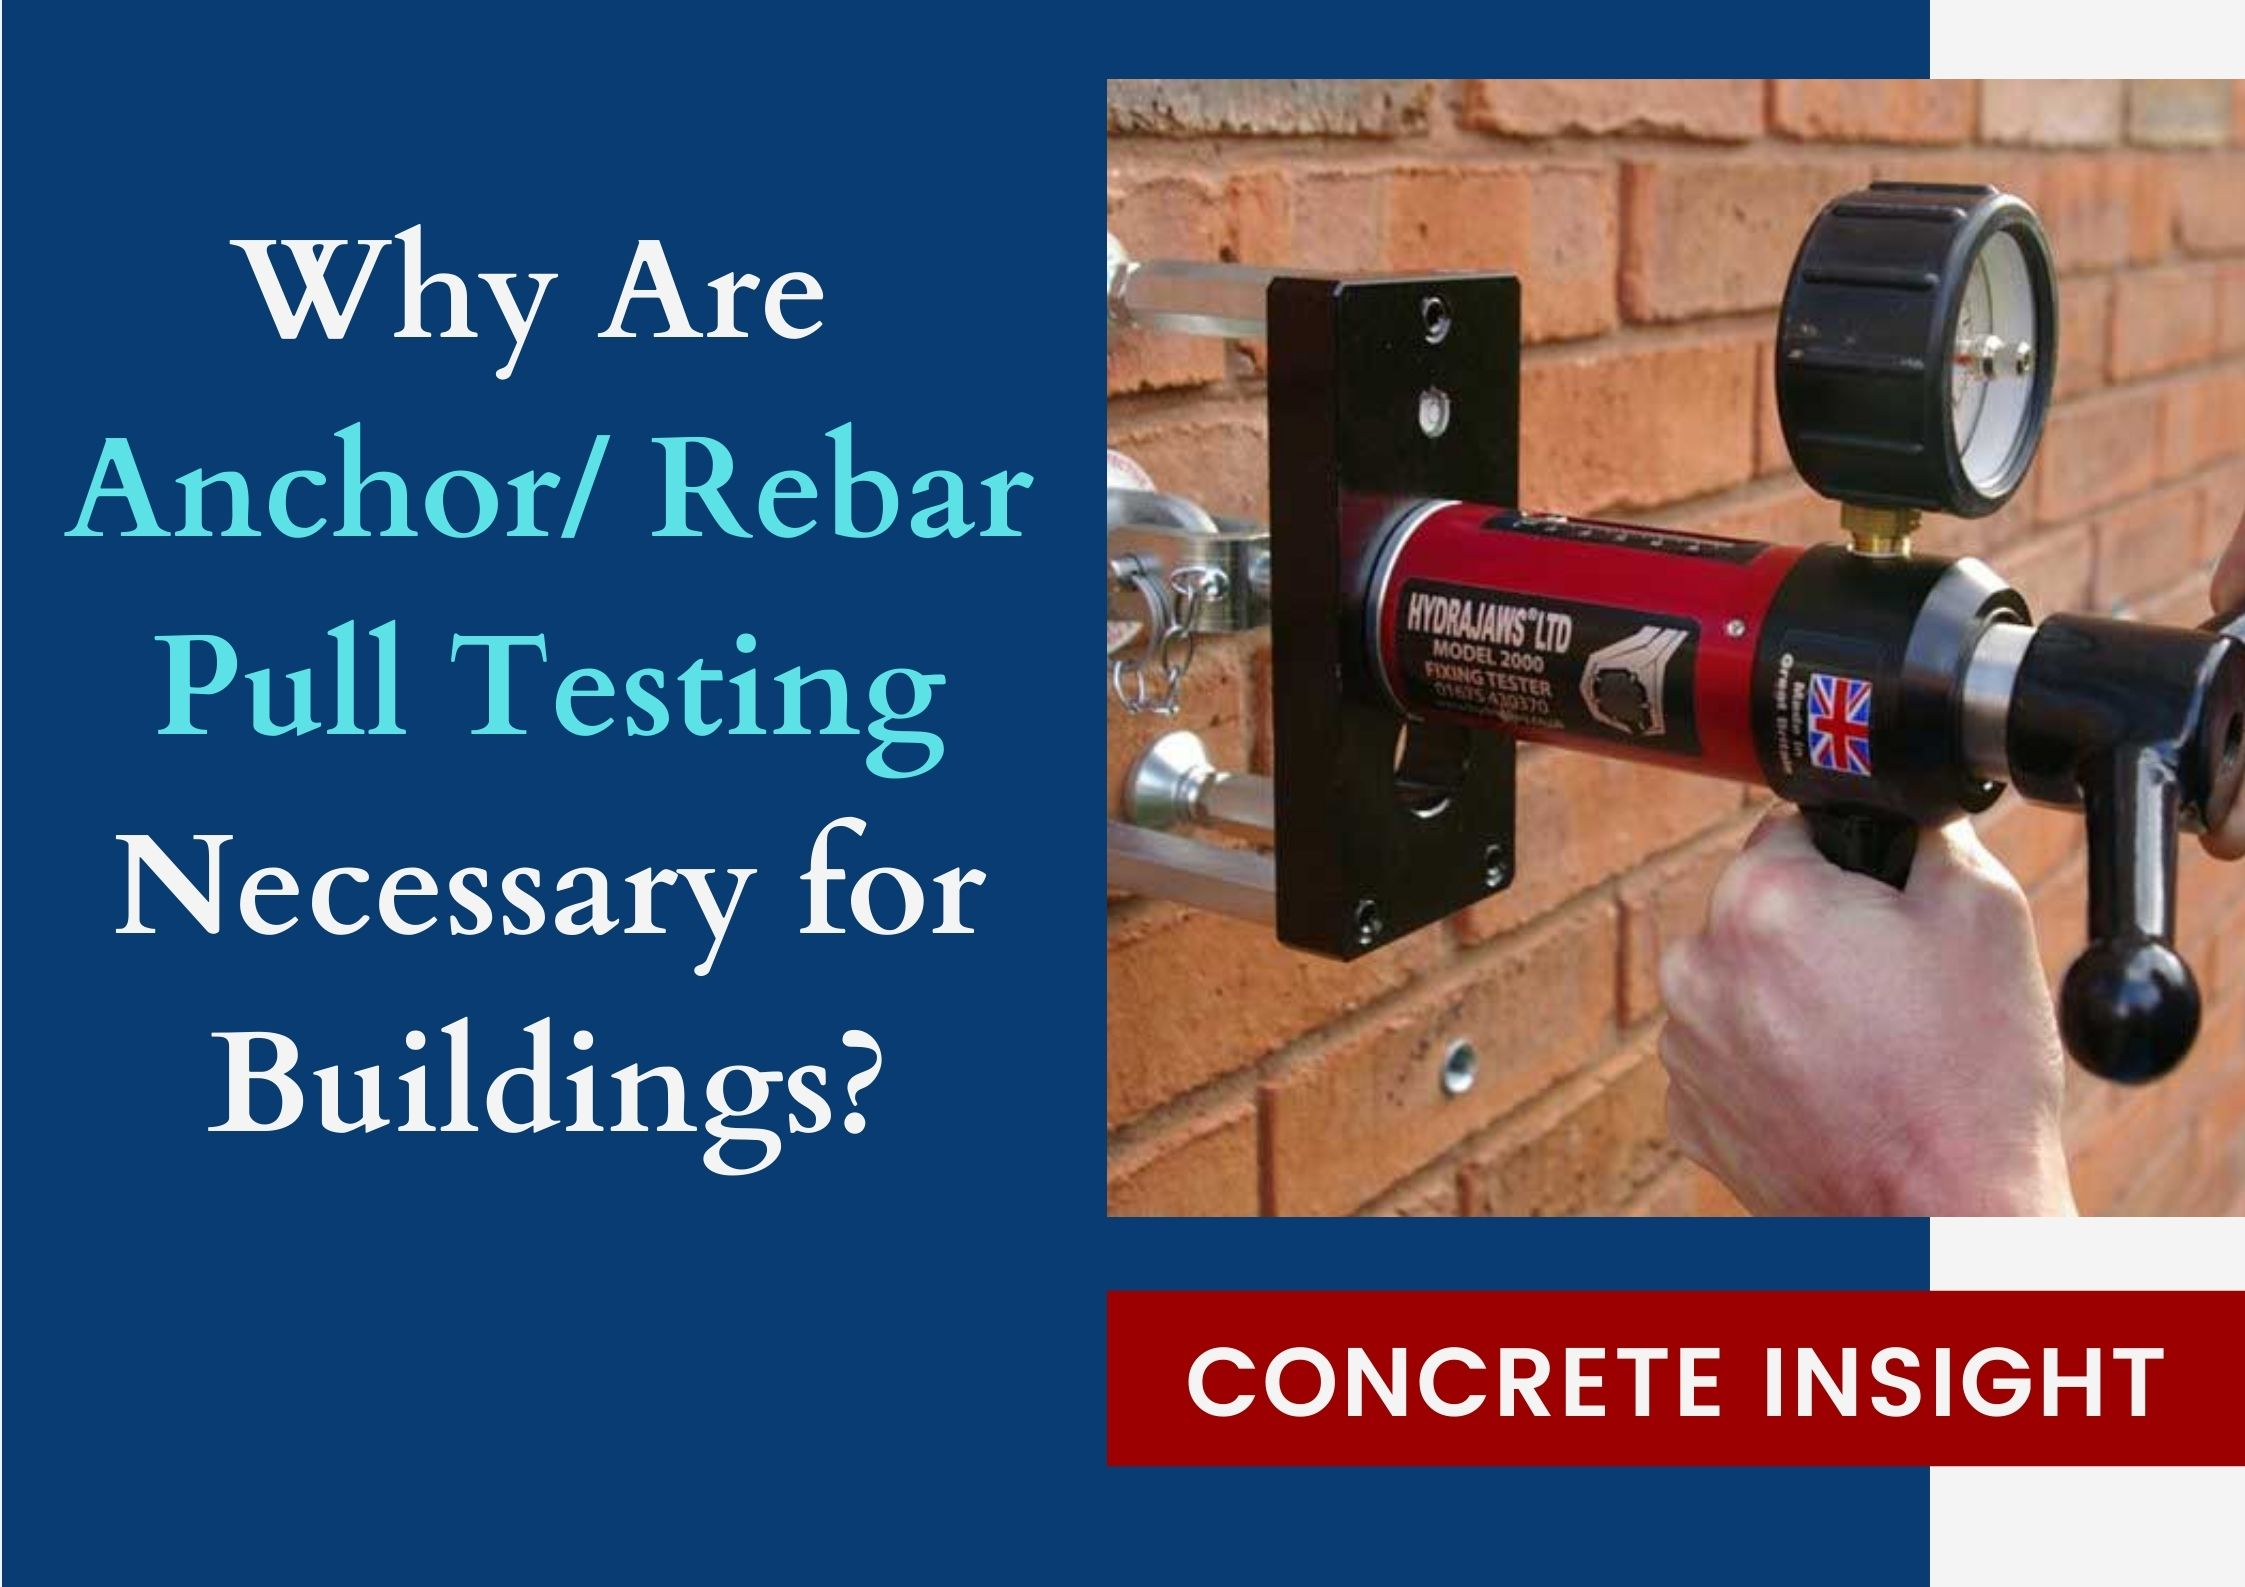 Why Are Anchor Rebar Pull Testing Necessary for Buildings